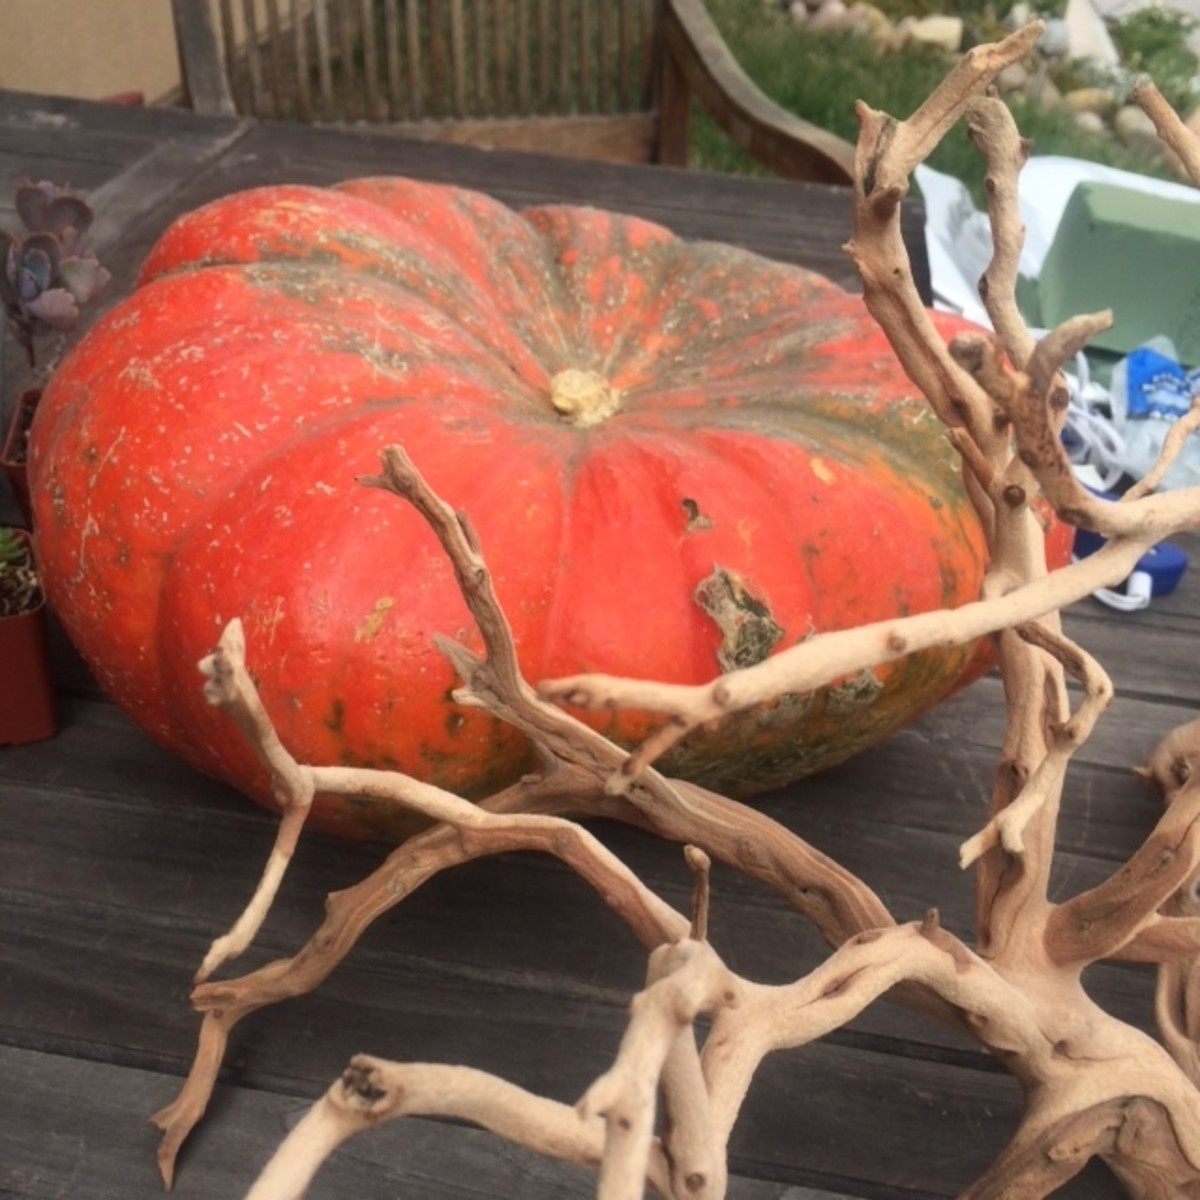 The star of the arrangement, a pumpkin and a piece of driftwood.